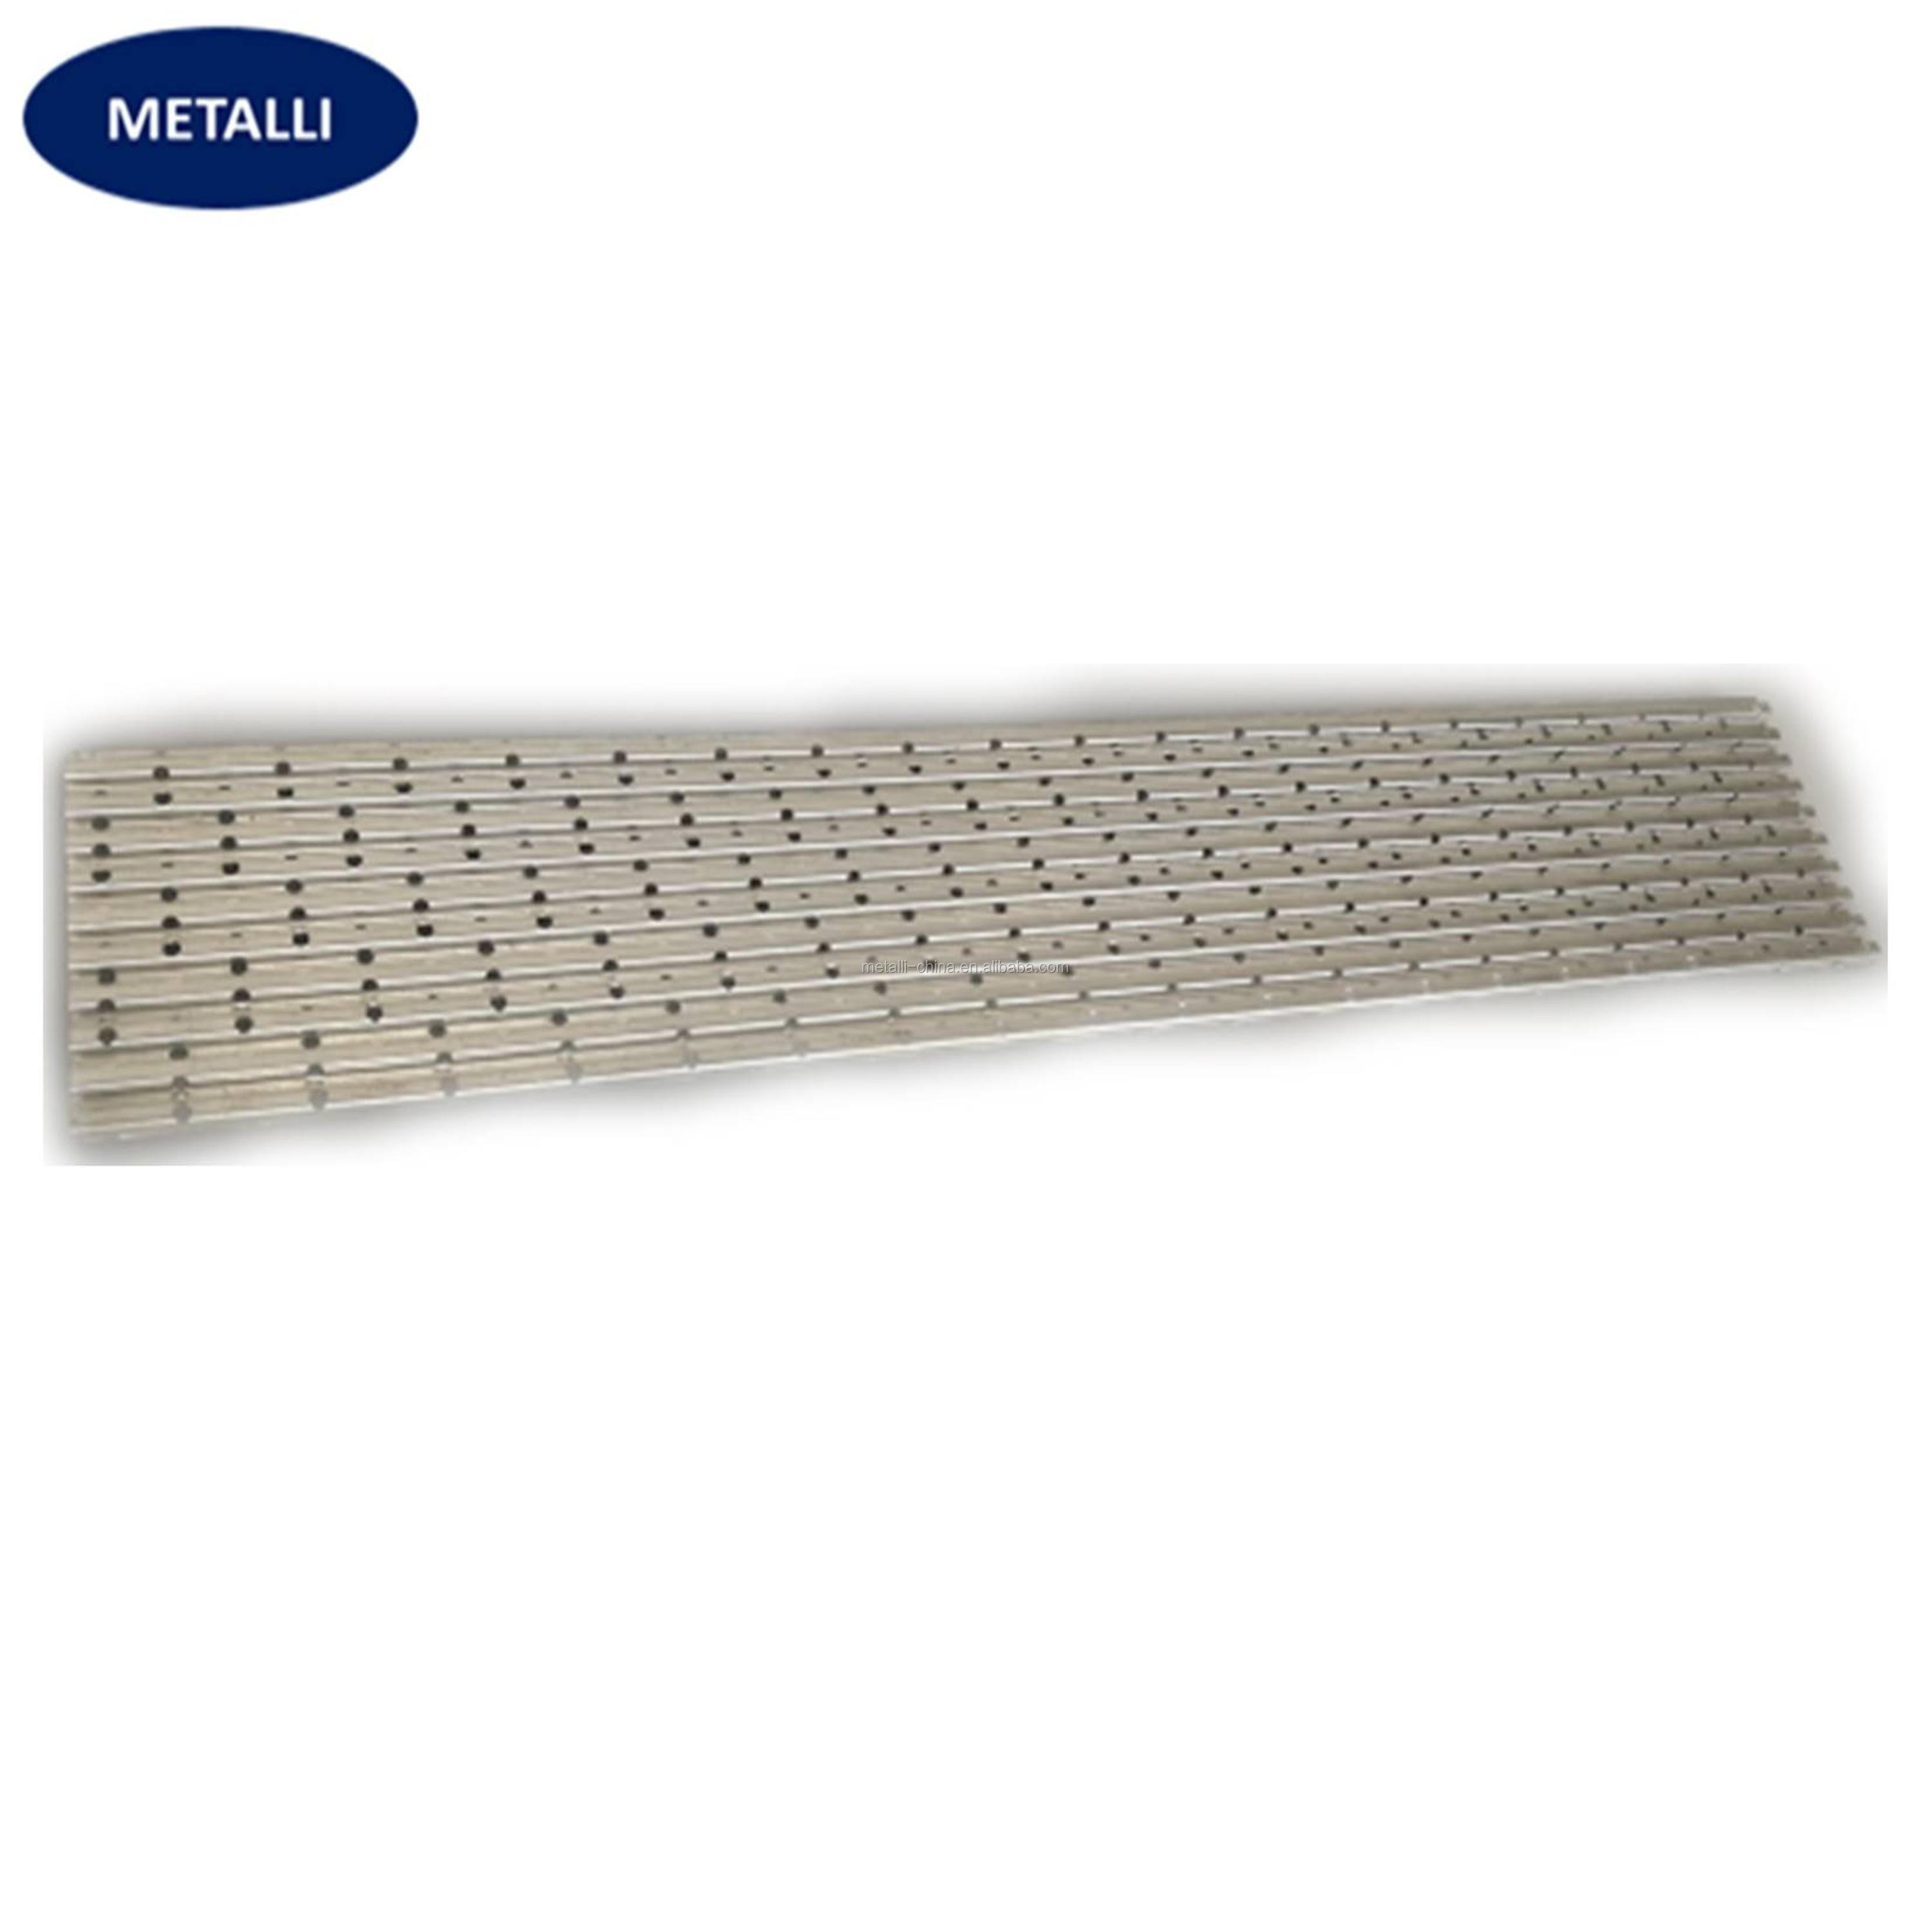 decor metal cladding sheet design aluminum concept product perforated decorative facade for prod steel